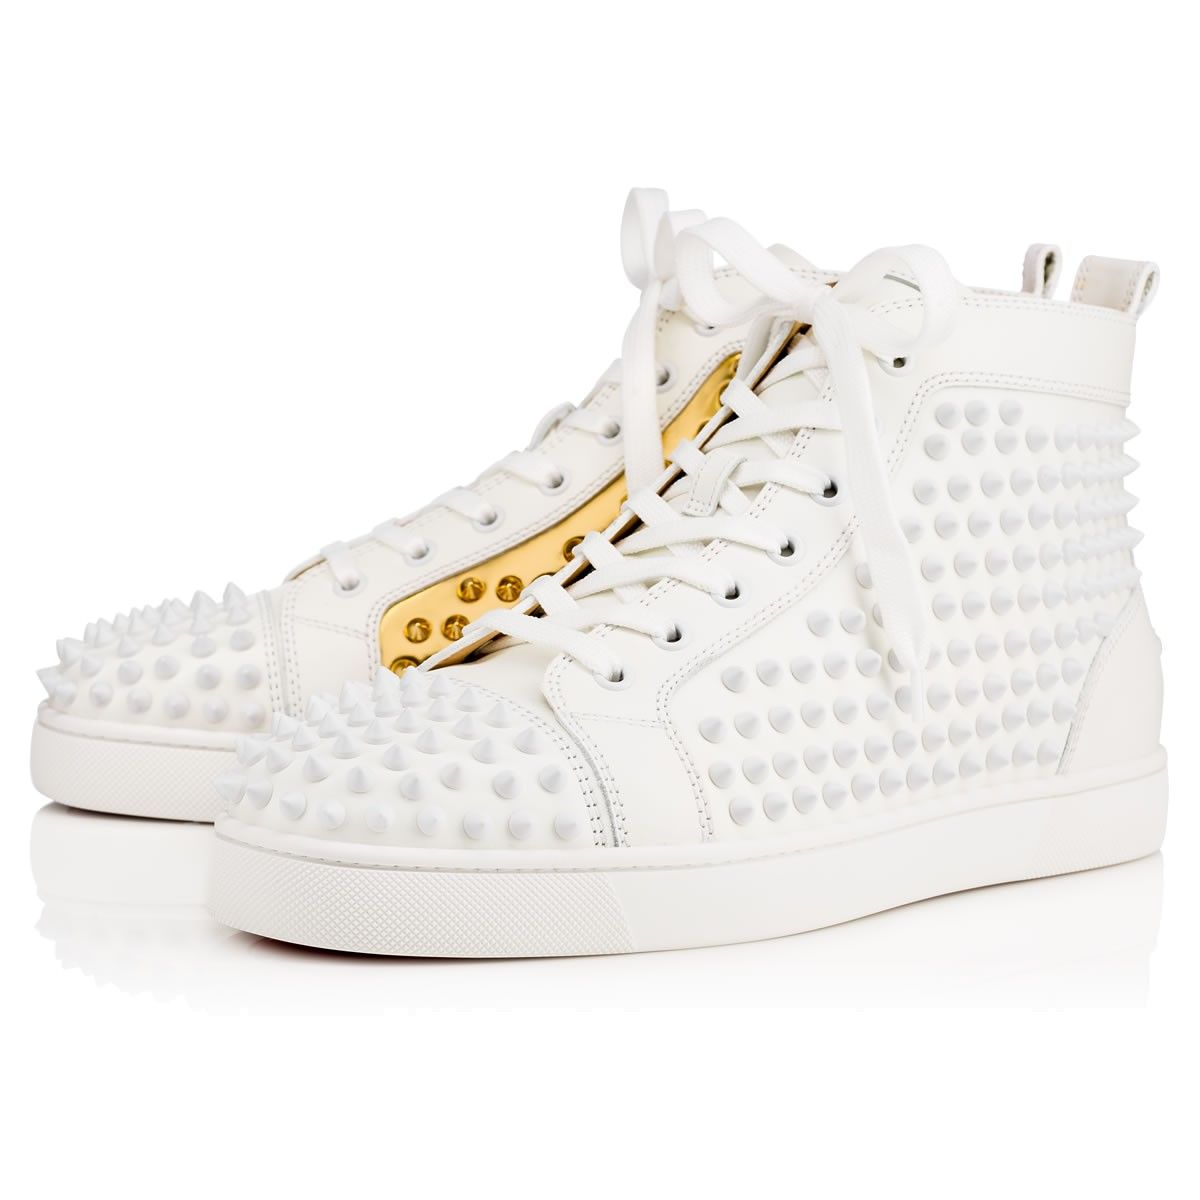 c42abfc2f4a CHRISTIAN LOUBOUTIN Louis Spikes Men s Flat Latte Gold Leather - Men Shoes  - Christian Louboutin.  christianlouboutin  shoes